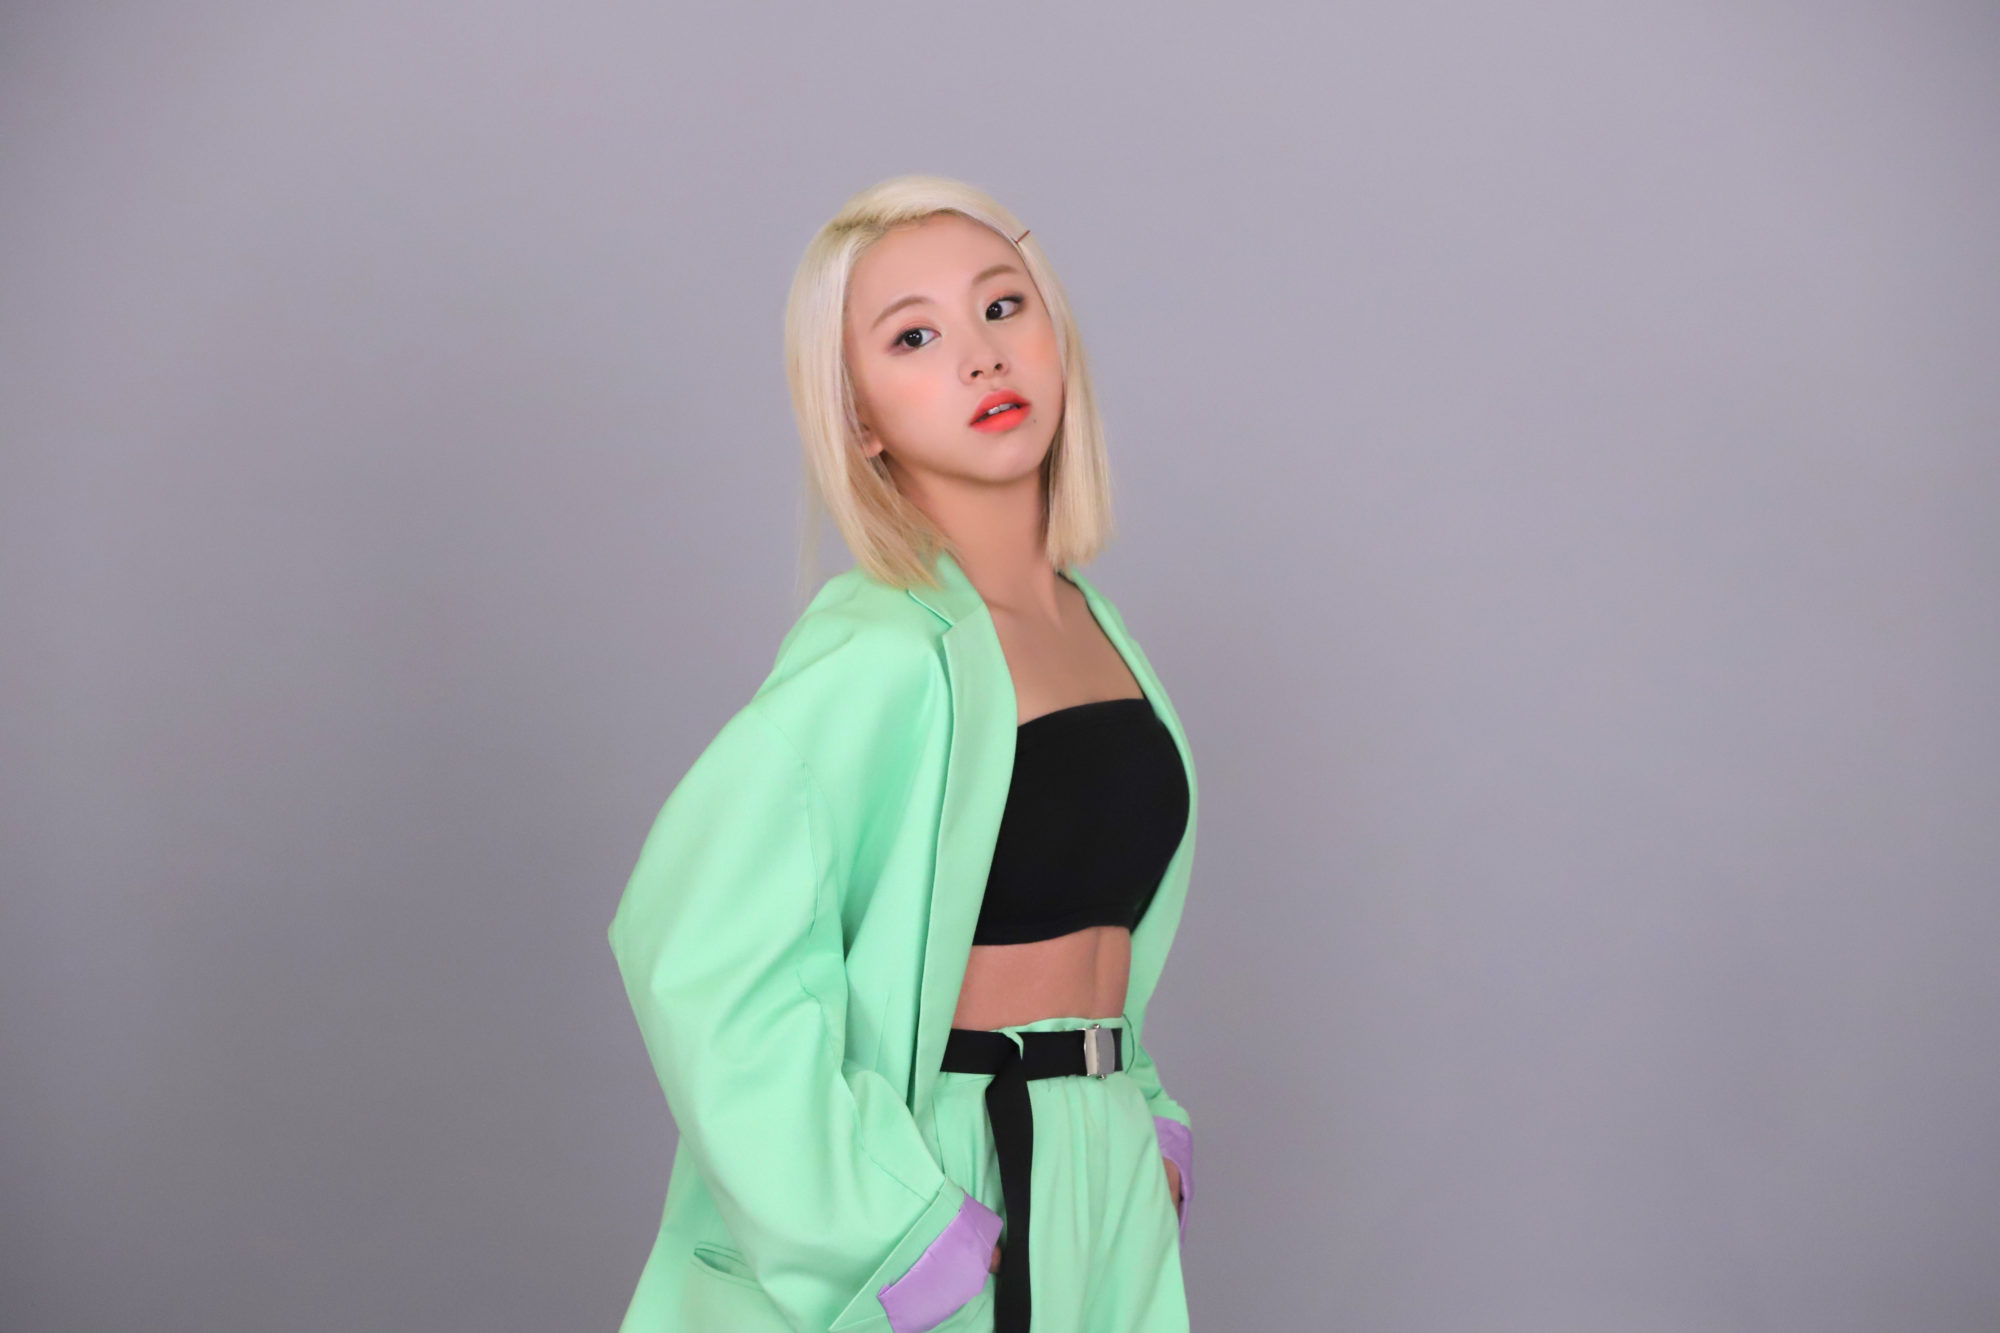 Twice Allure Chaeyoung 2019 HD